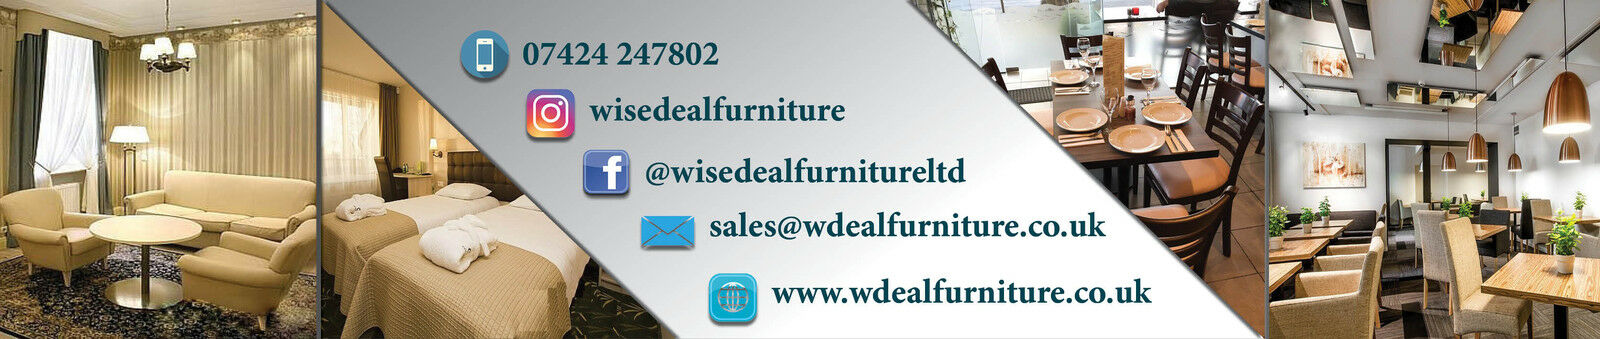 Wise deal furniture